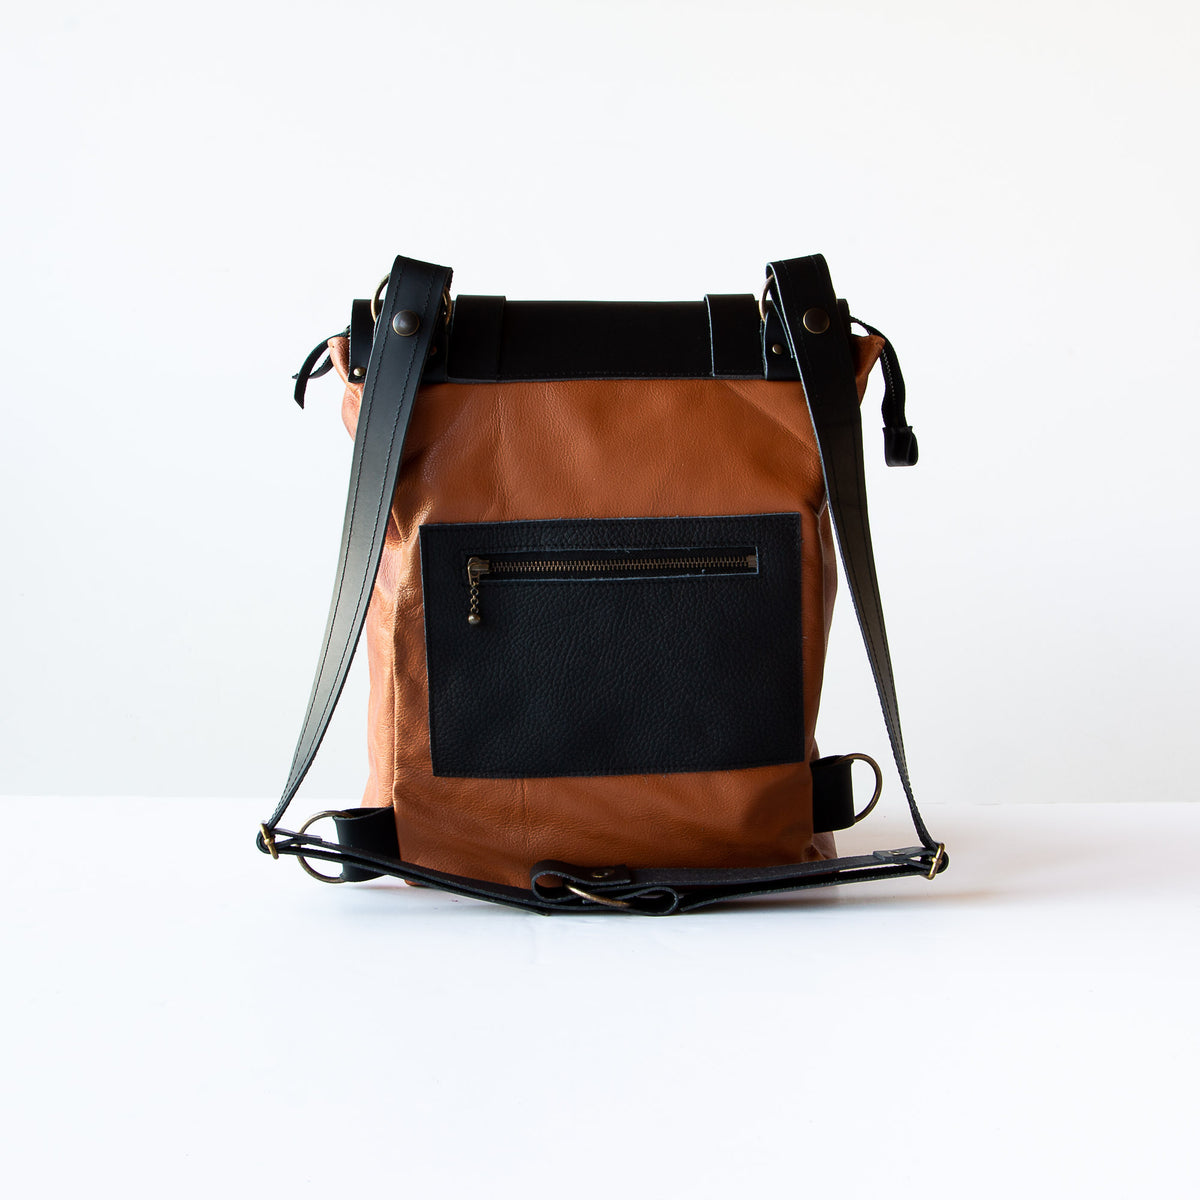 rear-View Caramel & Black Handcrafted Leather Backpack / Crossbody Bag - Sold by Chic & Basta